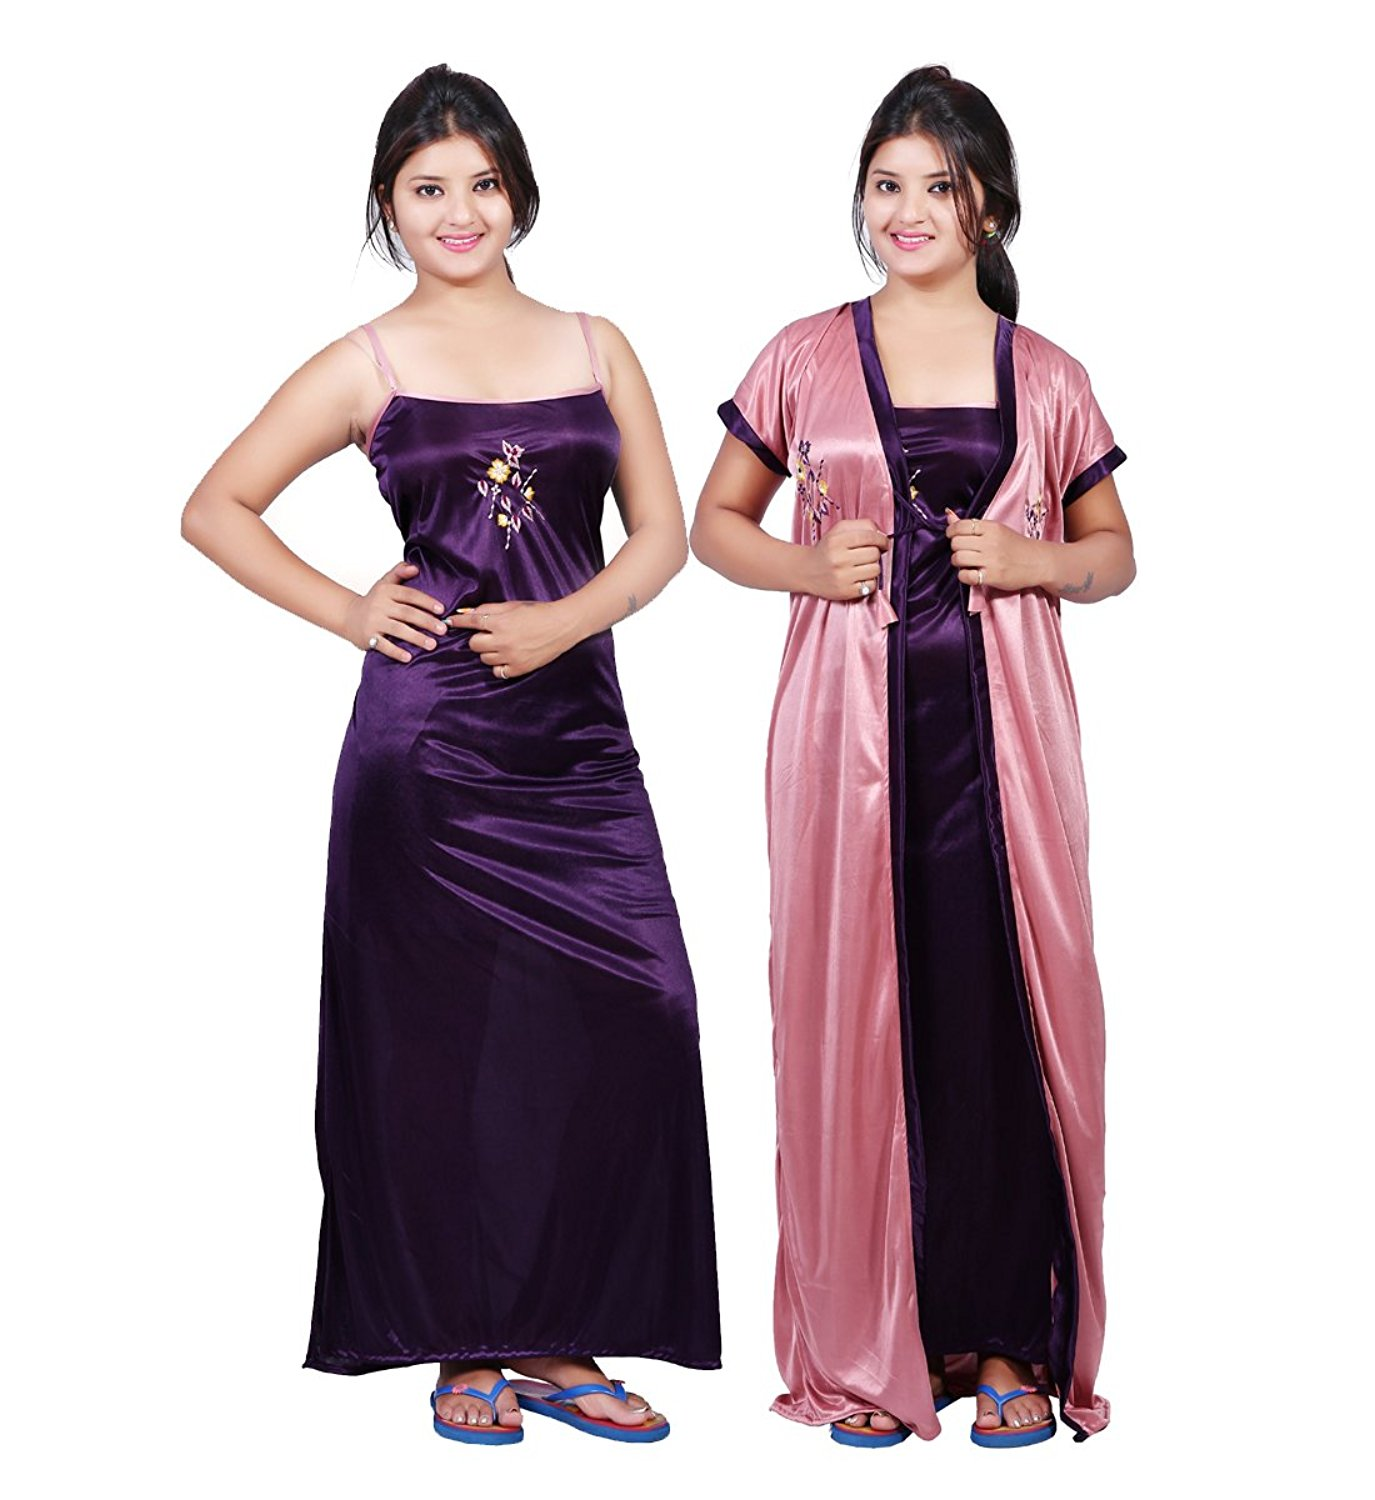 bailey womenu0027s satin night dress (pack of 2): amazon.in: clothing u0026  accessories qkcbxgh